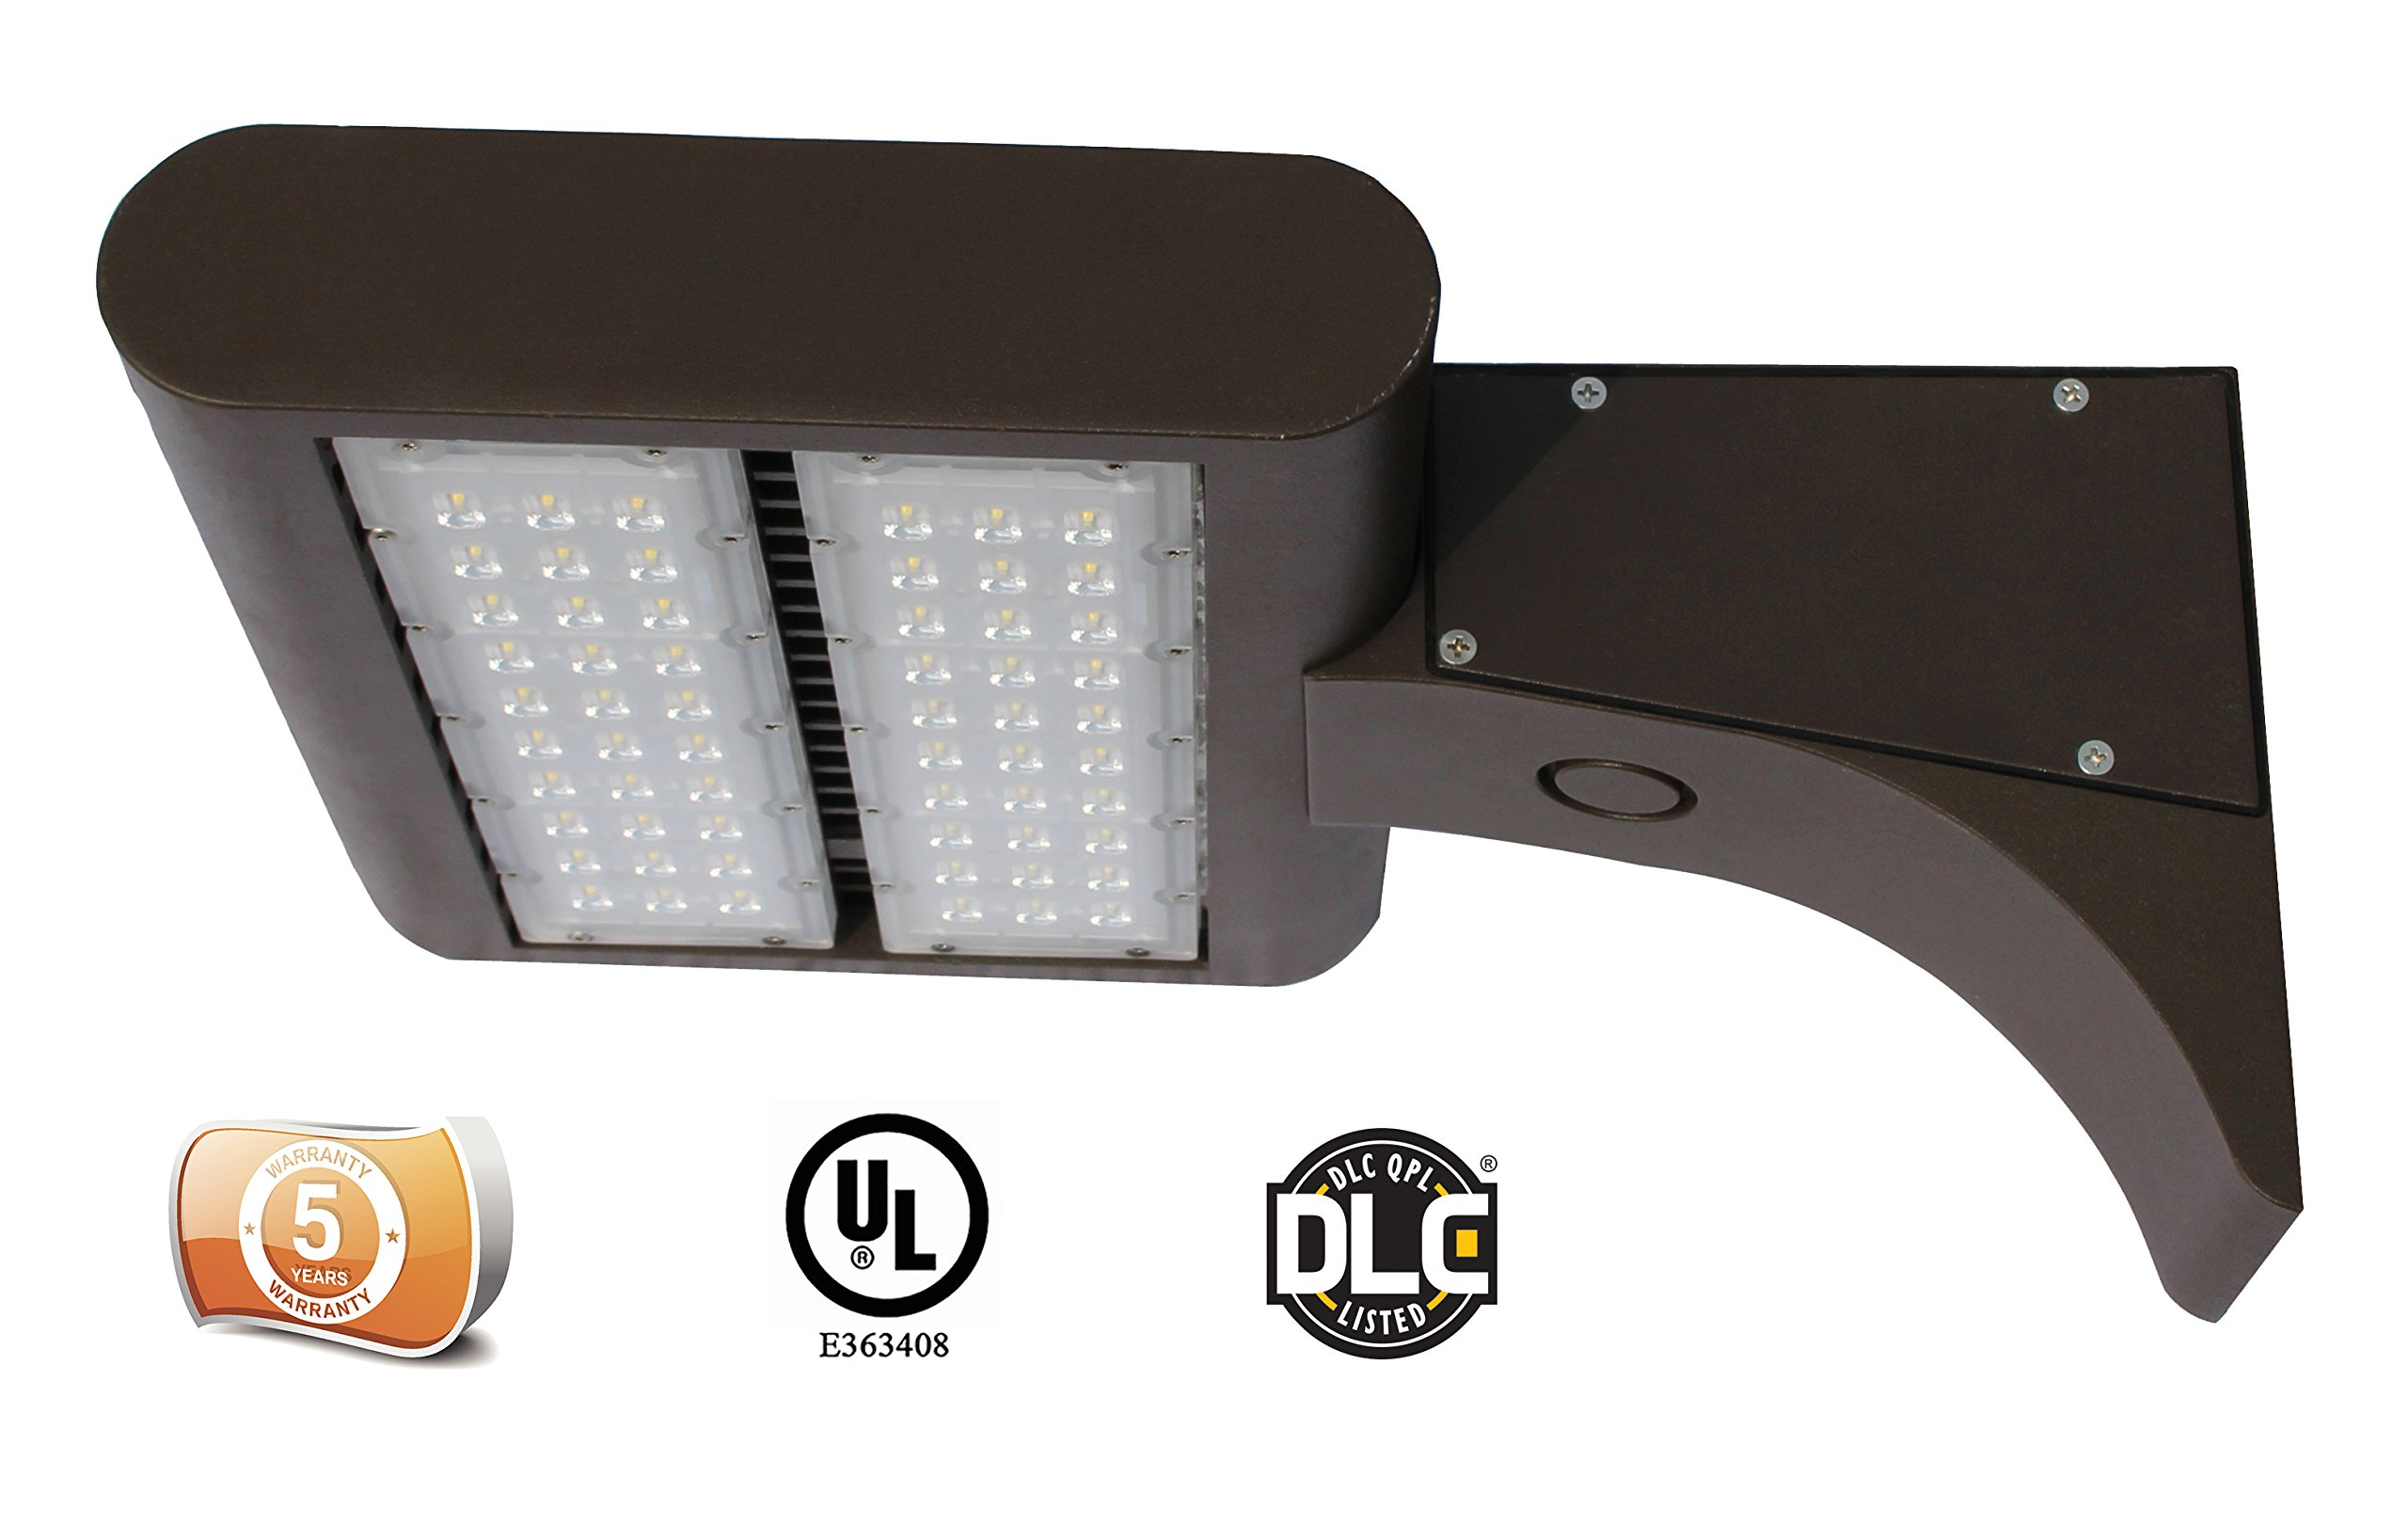 DLC Listed LEDrock Electra Series 150 Watt LED Area Light, 4000K Neutral White, 120V-277V, Comparable to 400W MH, 15,131 Lumens, Pole Arm Mount Area Light, UL Listed, Warranty Based in Denver, CO, USA